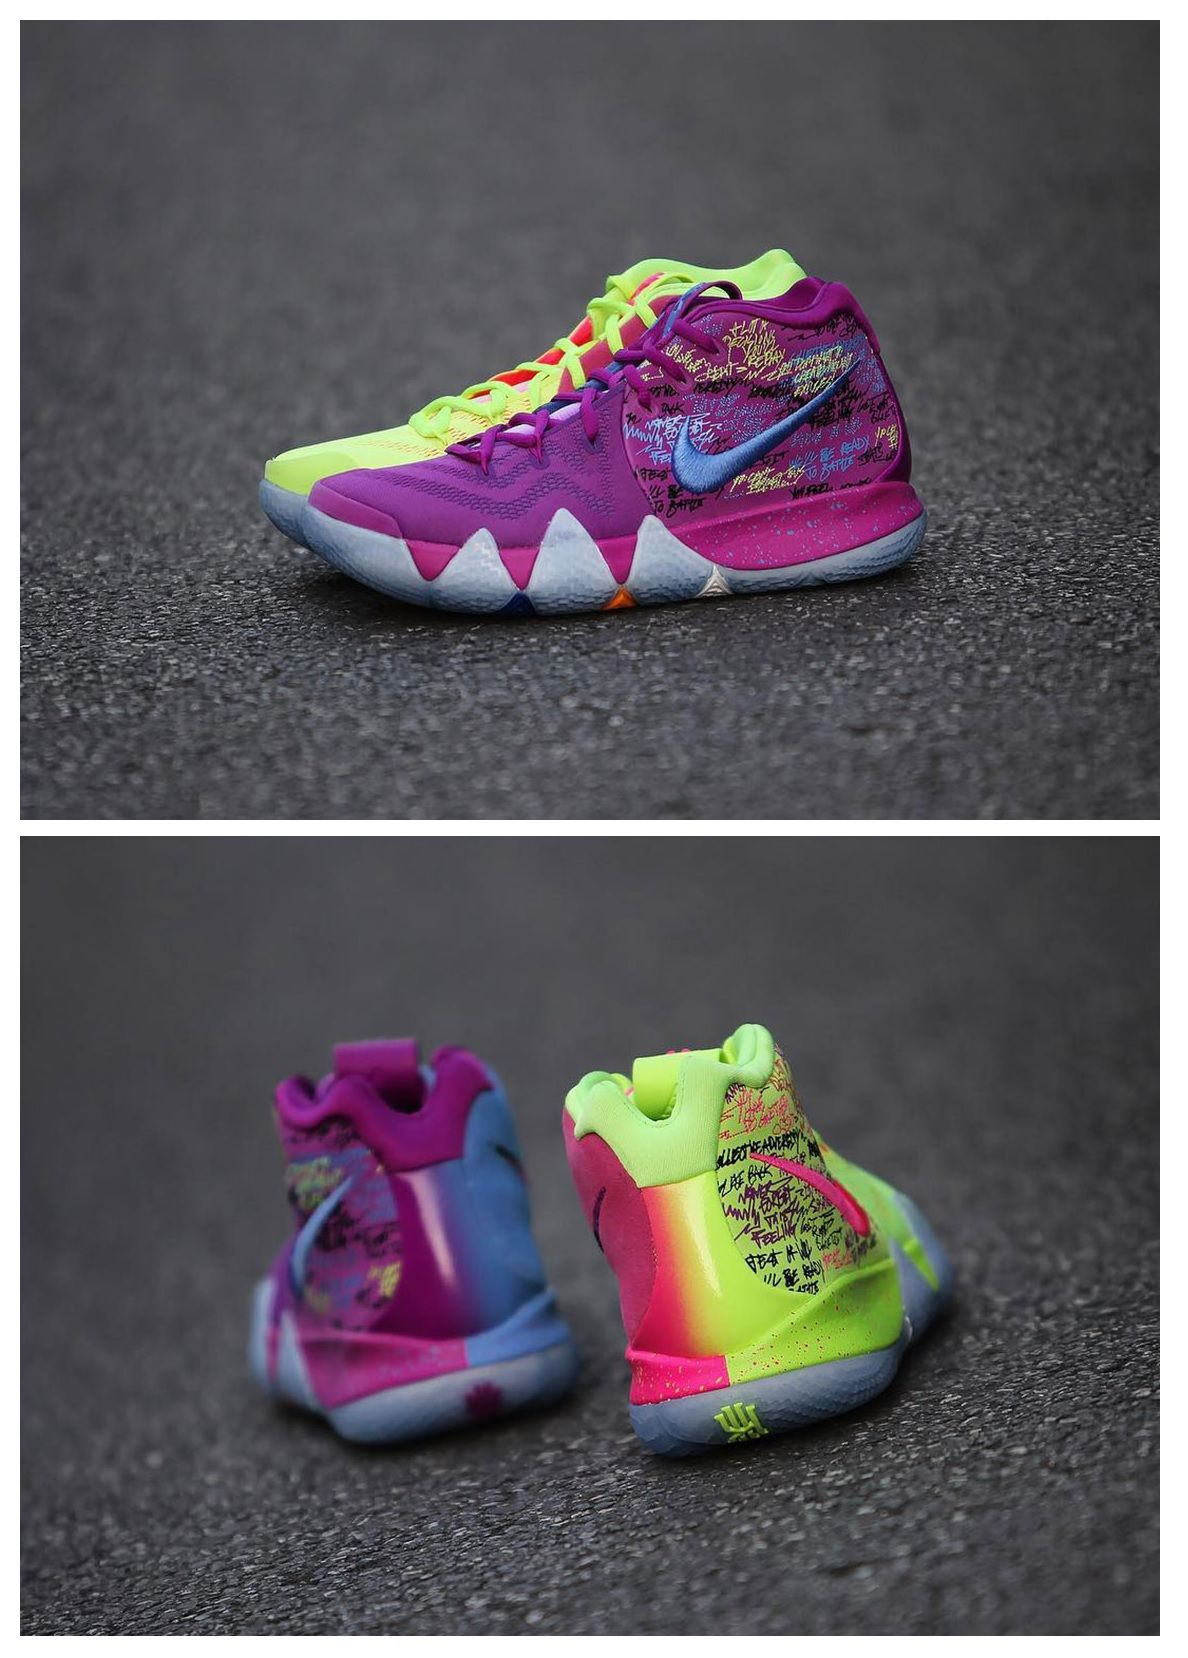 new style ff37f 3f68e Nike Kyrie 4 Confetti | The Kicks | Nike kyrie, Nike shoes, Nike